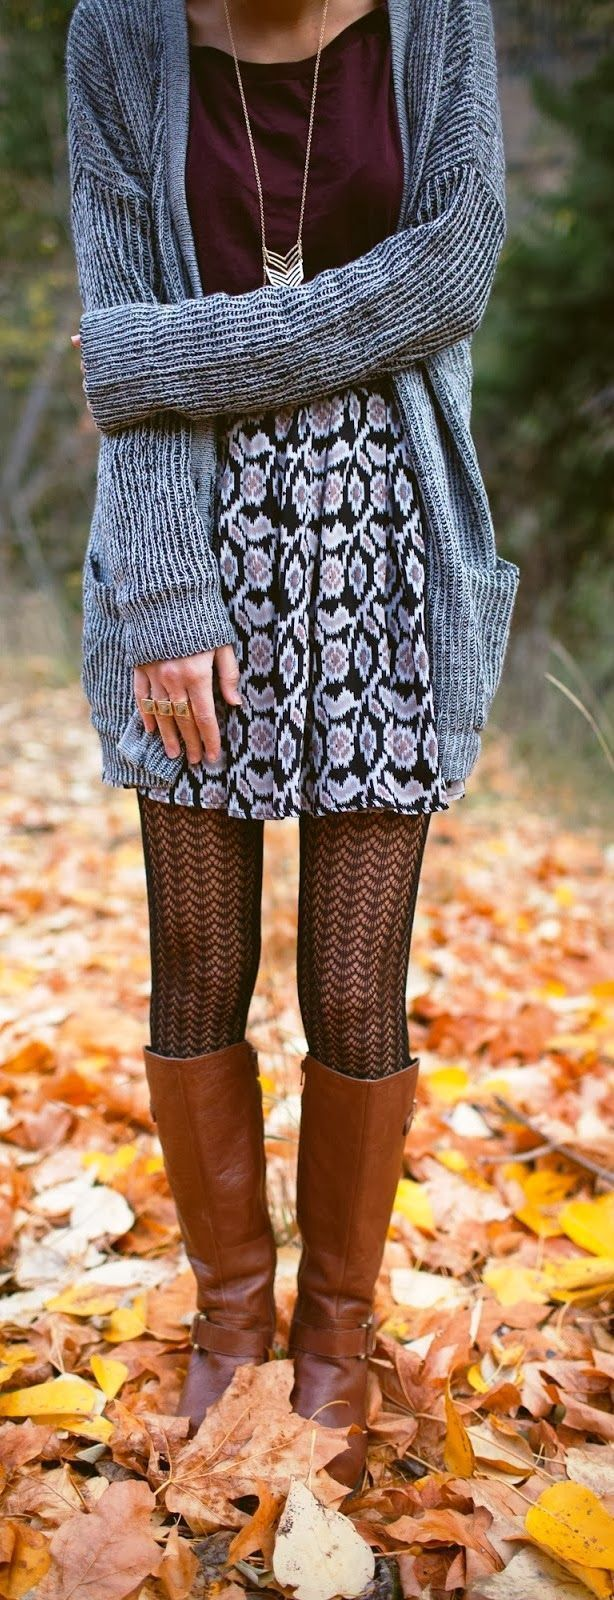 Love this outfit. Patterned tights and skirt with long cardigan, which looks fantastically comfy.